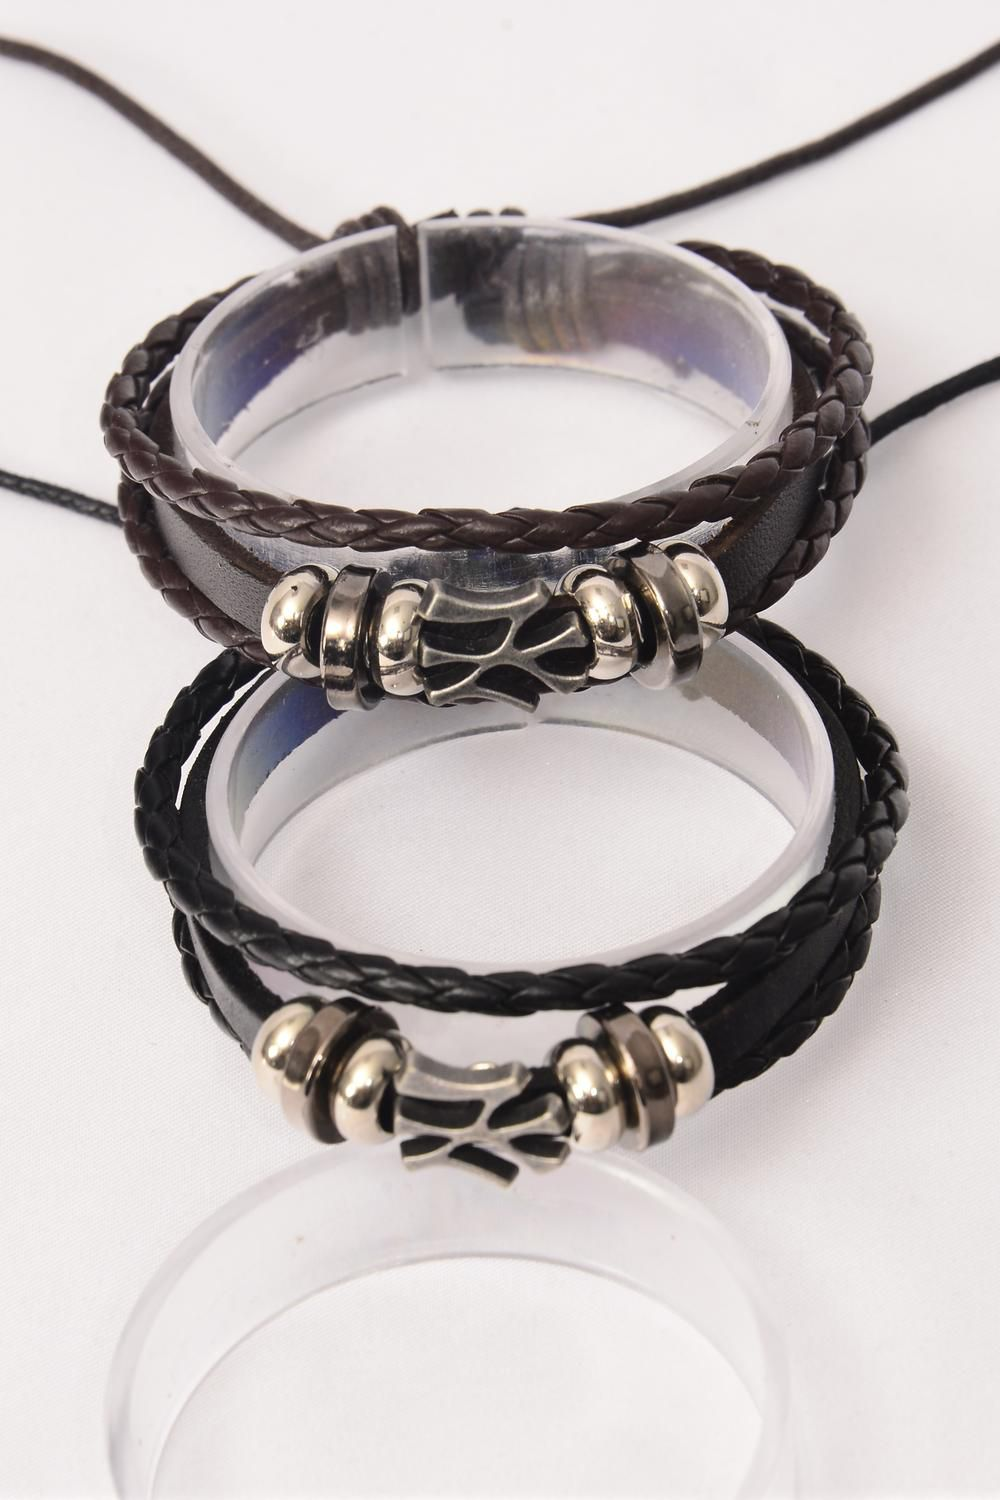 Bracelet Real Leather NY Triple Adjustable/DZ **Unisex** Adjustable,Hang Tag OPP Bag & UPC Code,Choose Colors